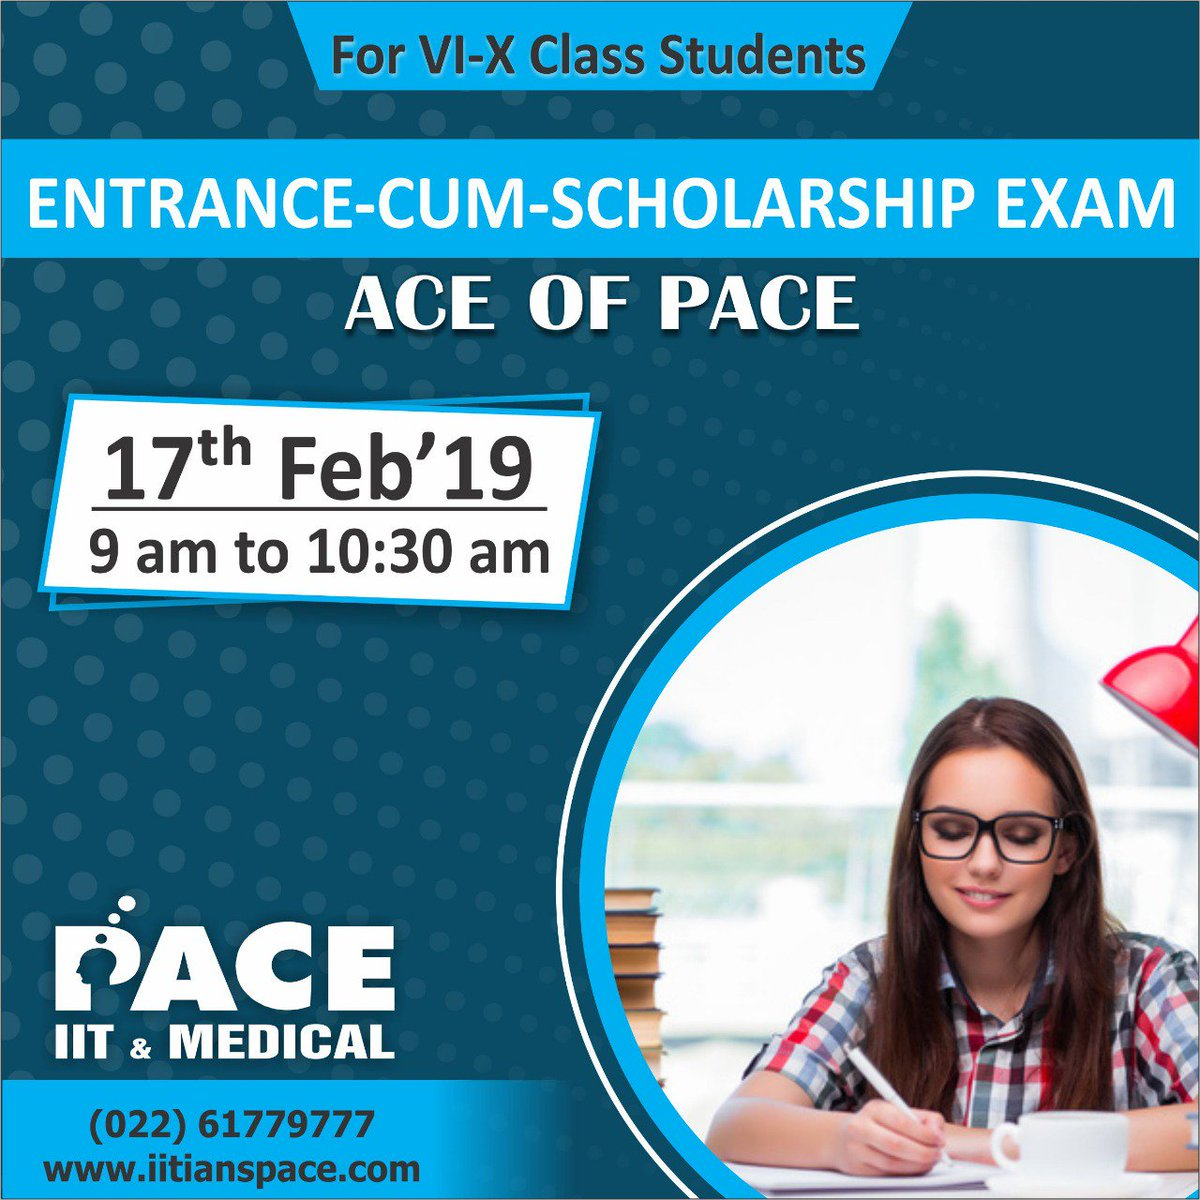 PACE IIT & Medical on Twitter: